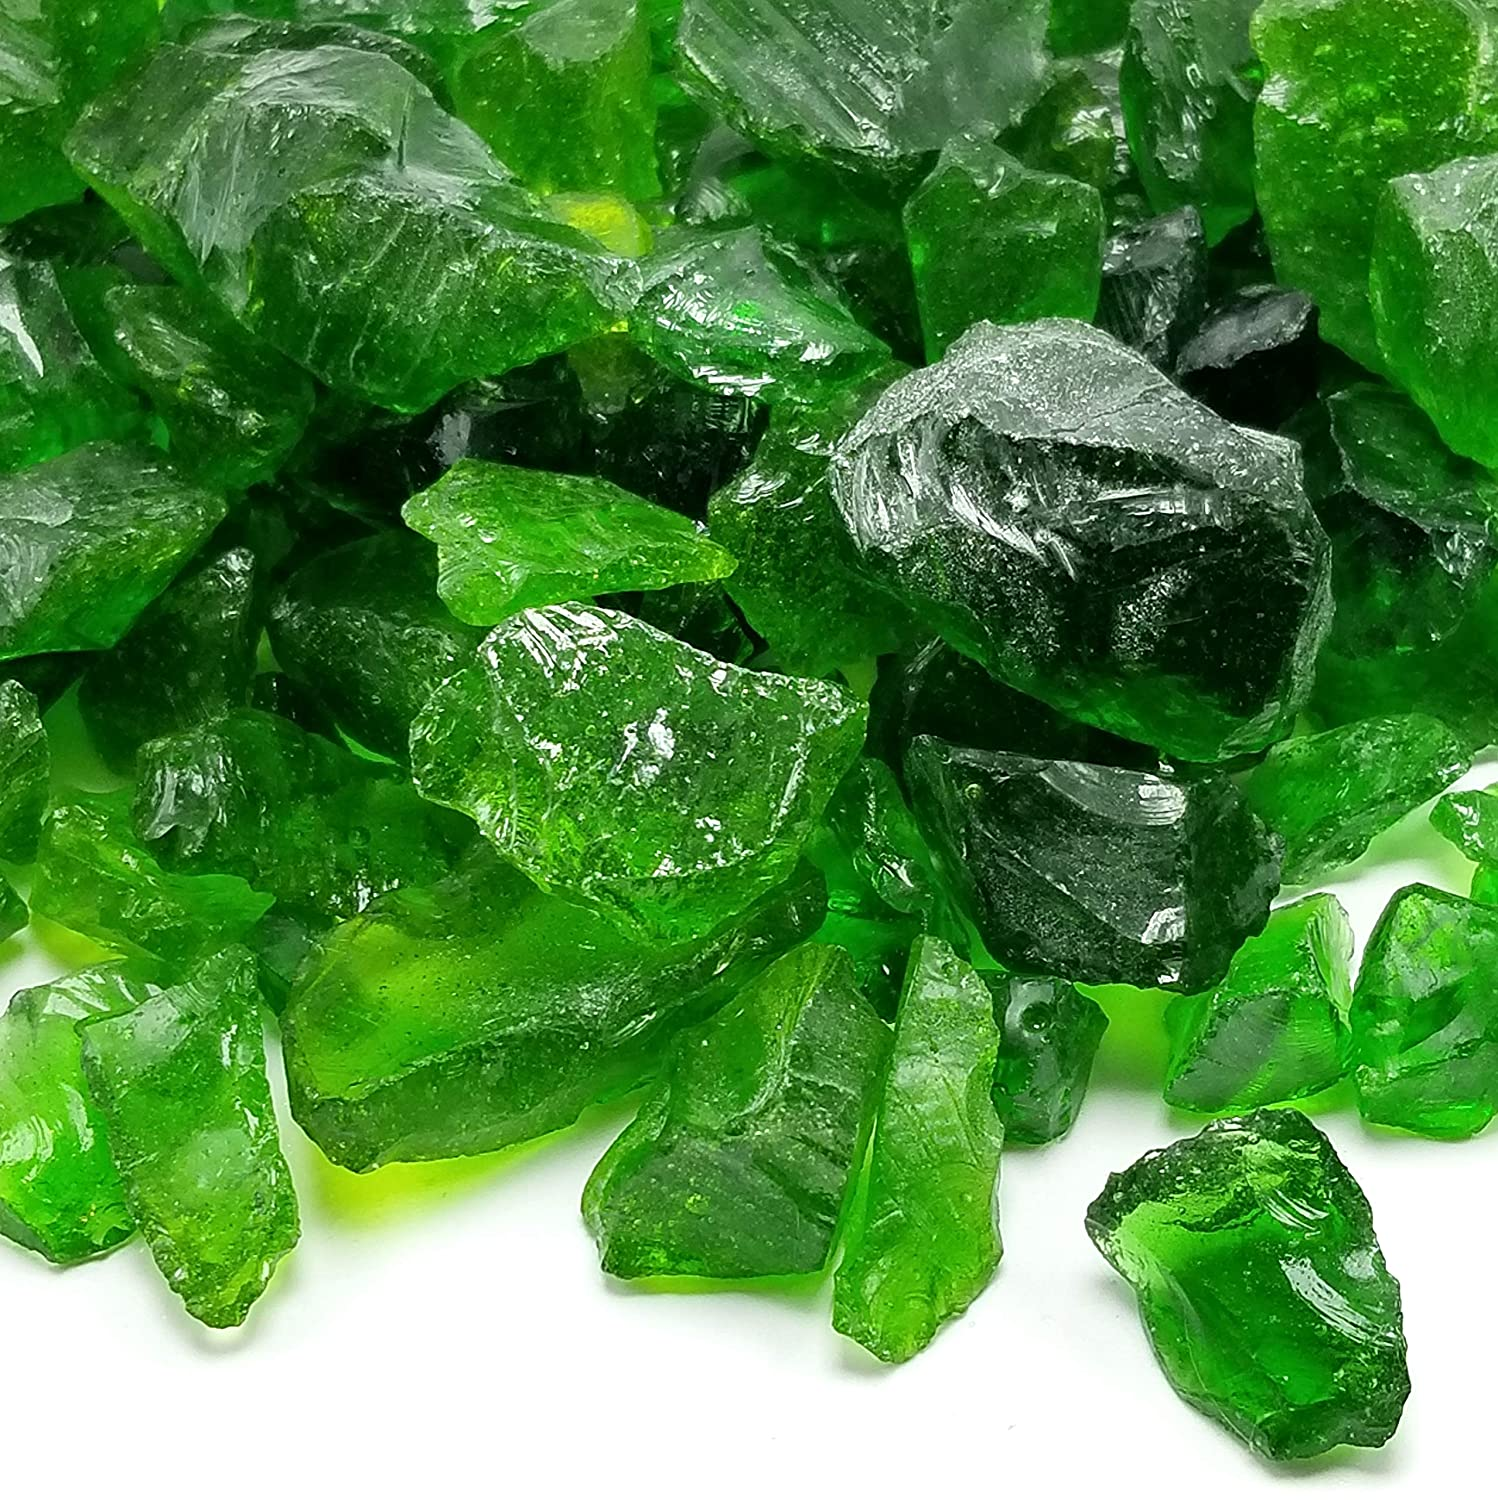 VIVID Heat Emerald Green Premium Outdoor Crushed Fire Glass Rock (5-Pound) Large 1/2, 3/4 & 1' inch Size - Glass use in Gas Fire Pit, Fireplace, Fire Table Etc. 3/4 & 1 inch Size - Glass use in Gas Fire Pit